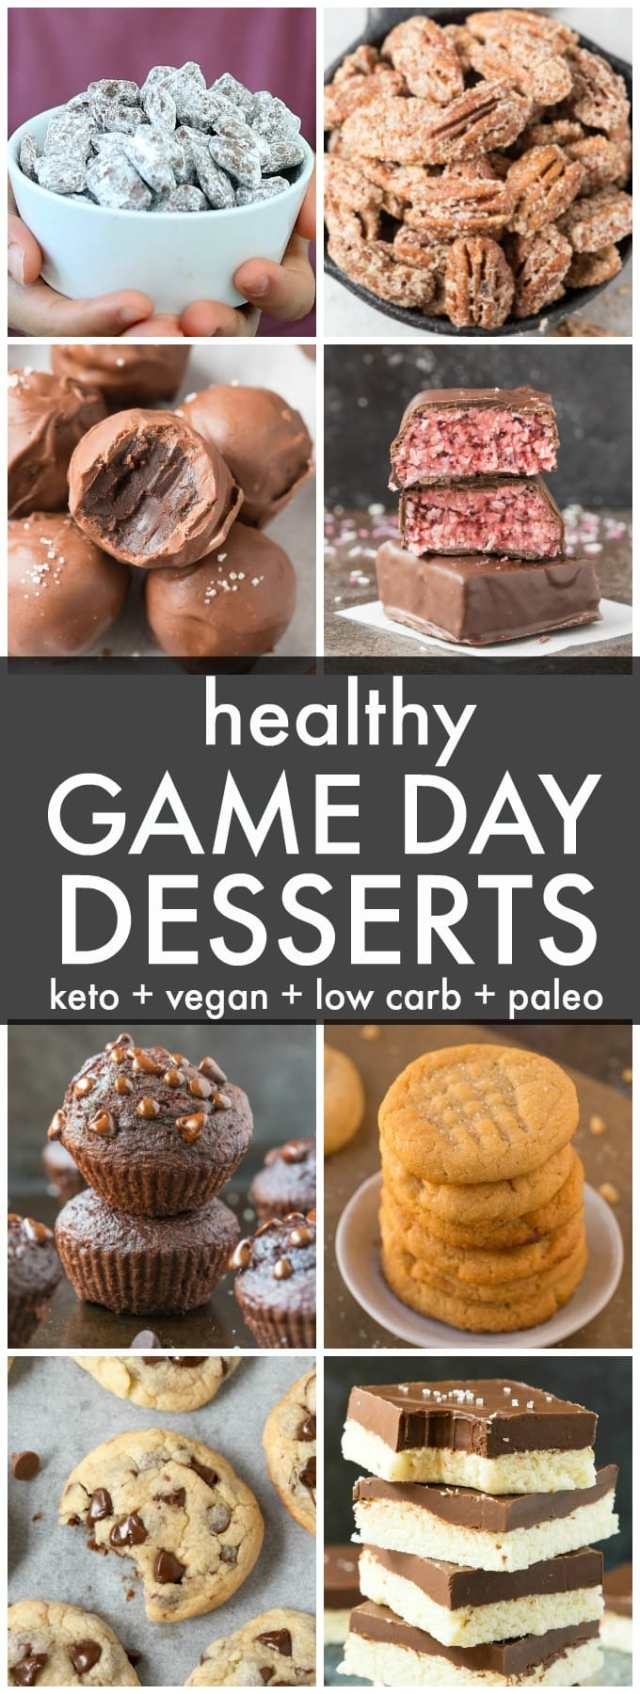 A collage of healthy keto and vegan game day and super bowl dessert recipes